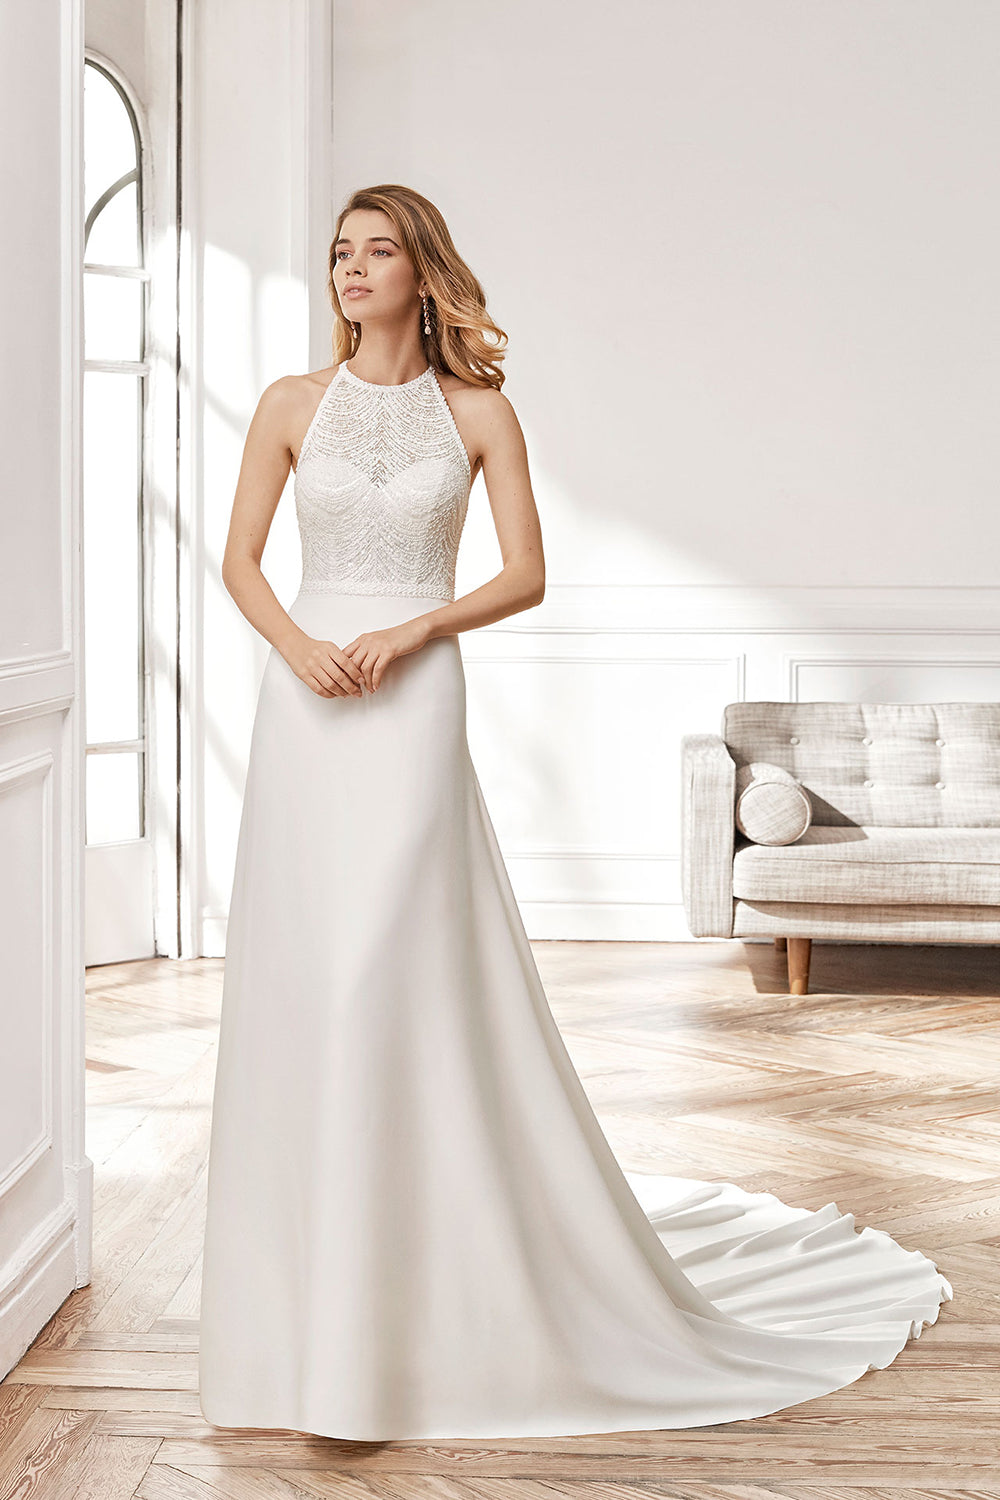 Nayeli - Coming Soon, Gown, Aire Barcelona - Eternal Bridal